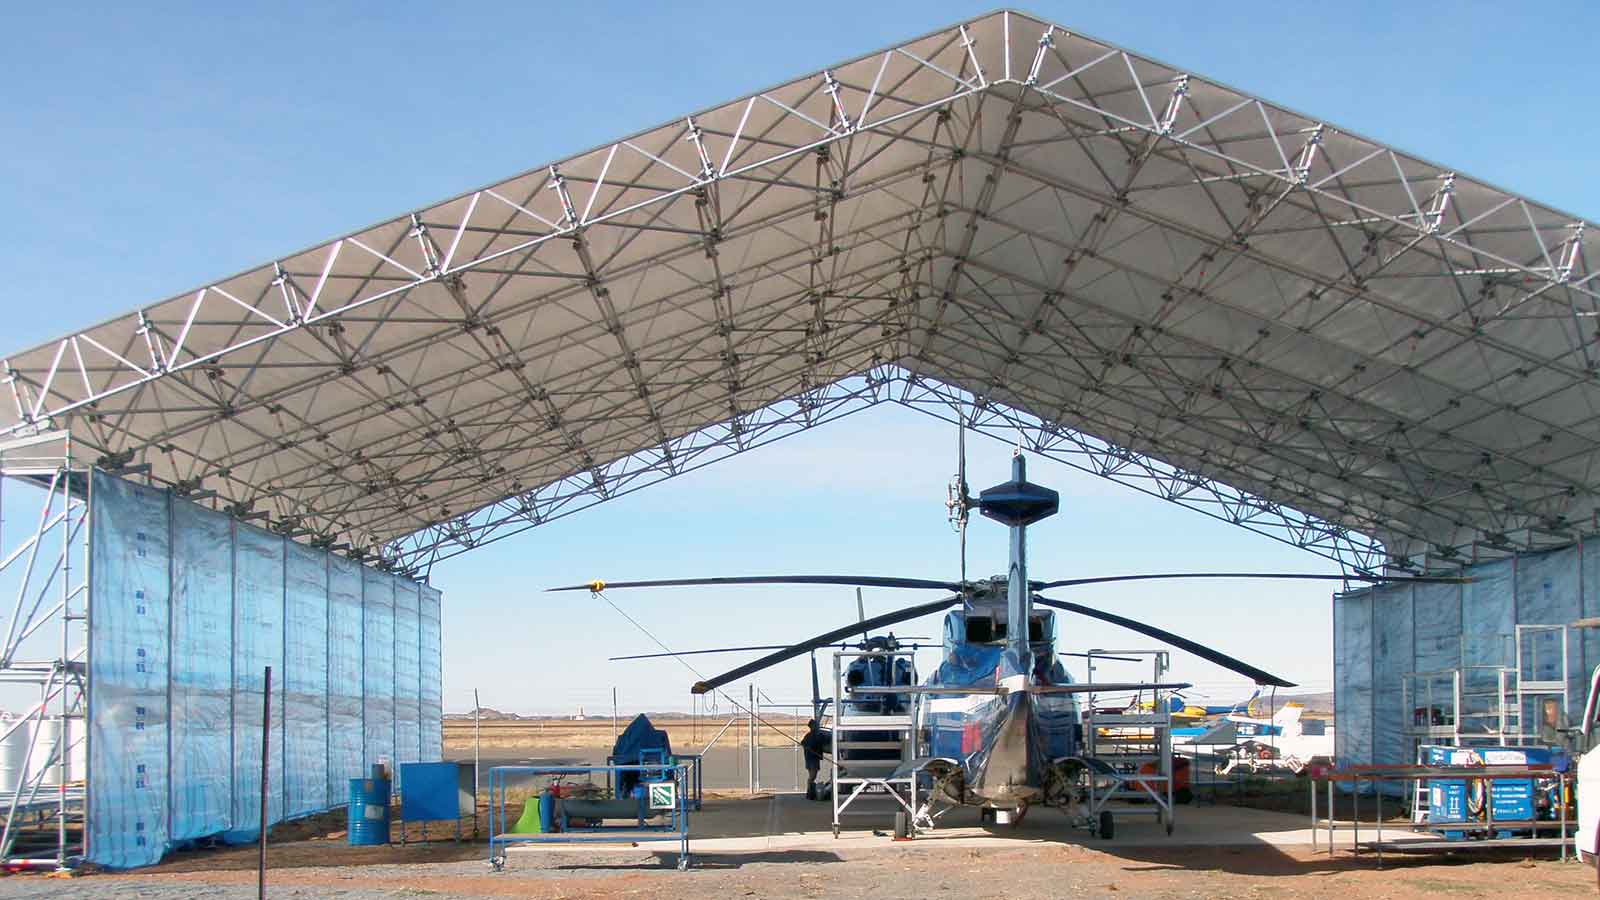 Helicopter hangar (temporary maintenance shelter) constructed using Layher Keder Roof system